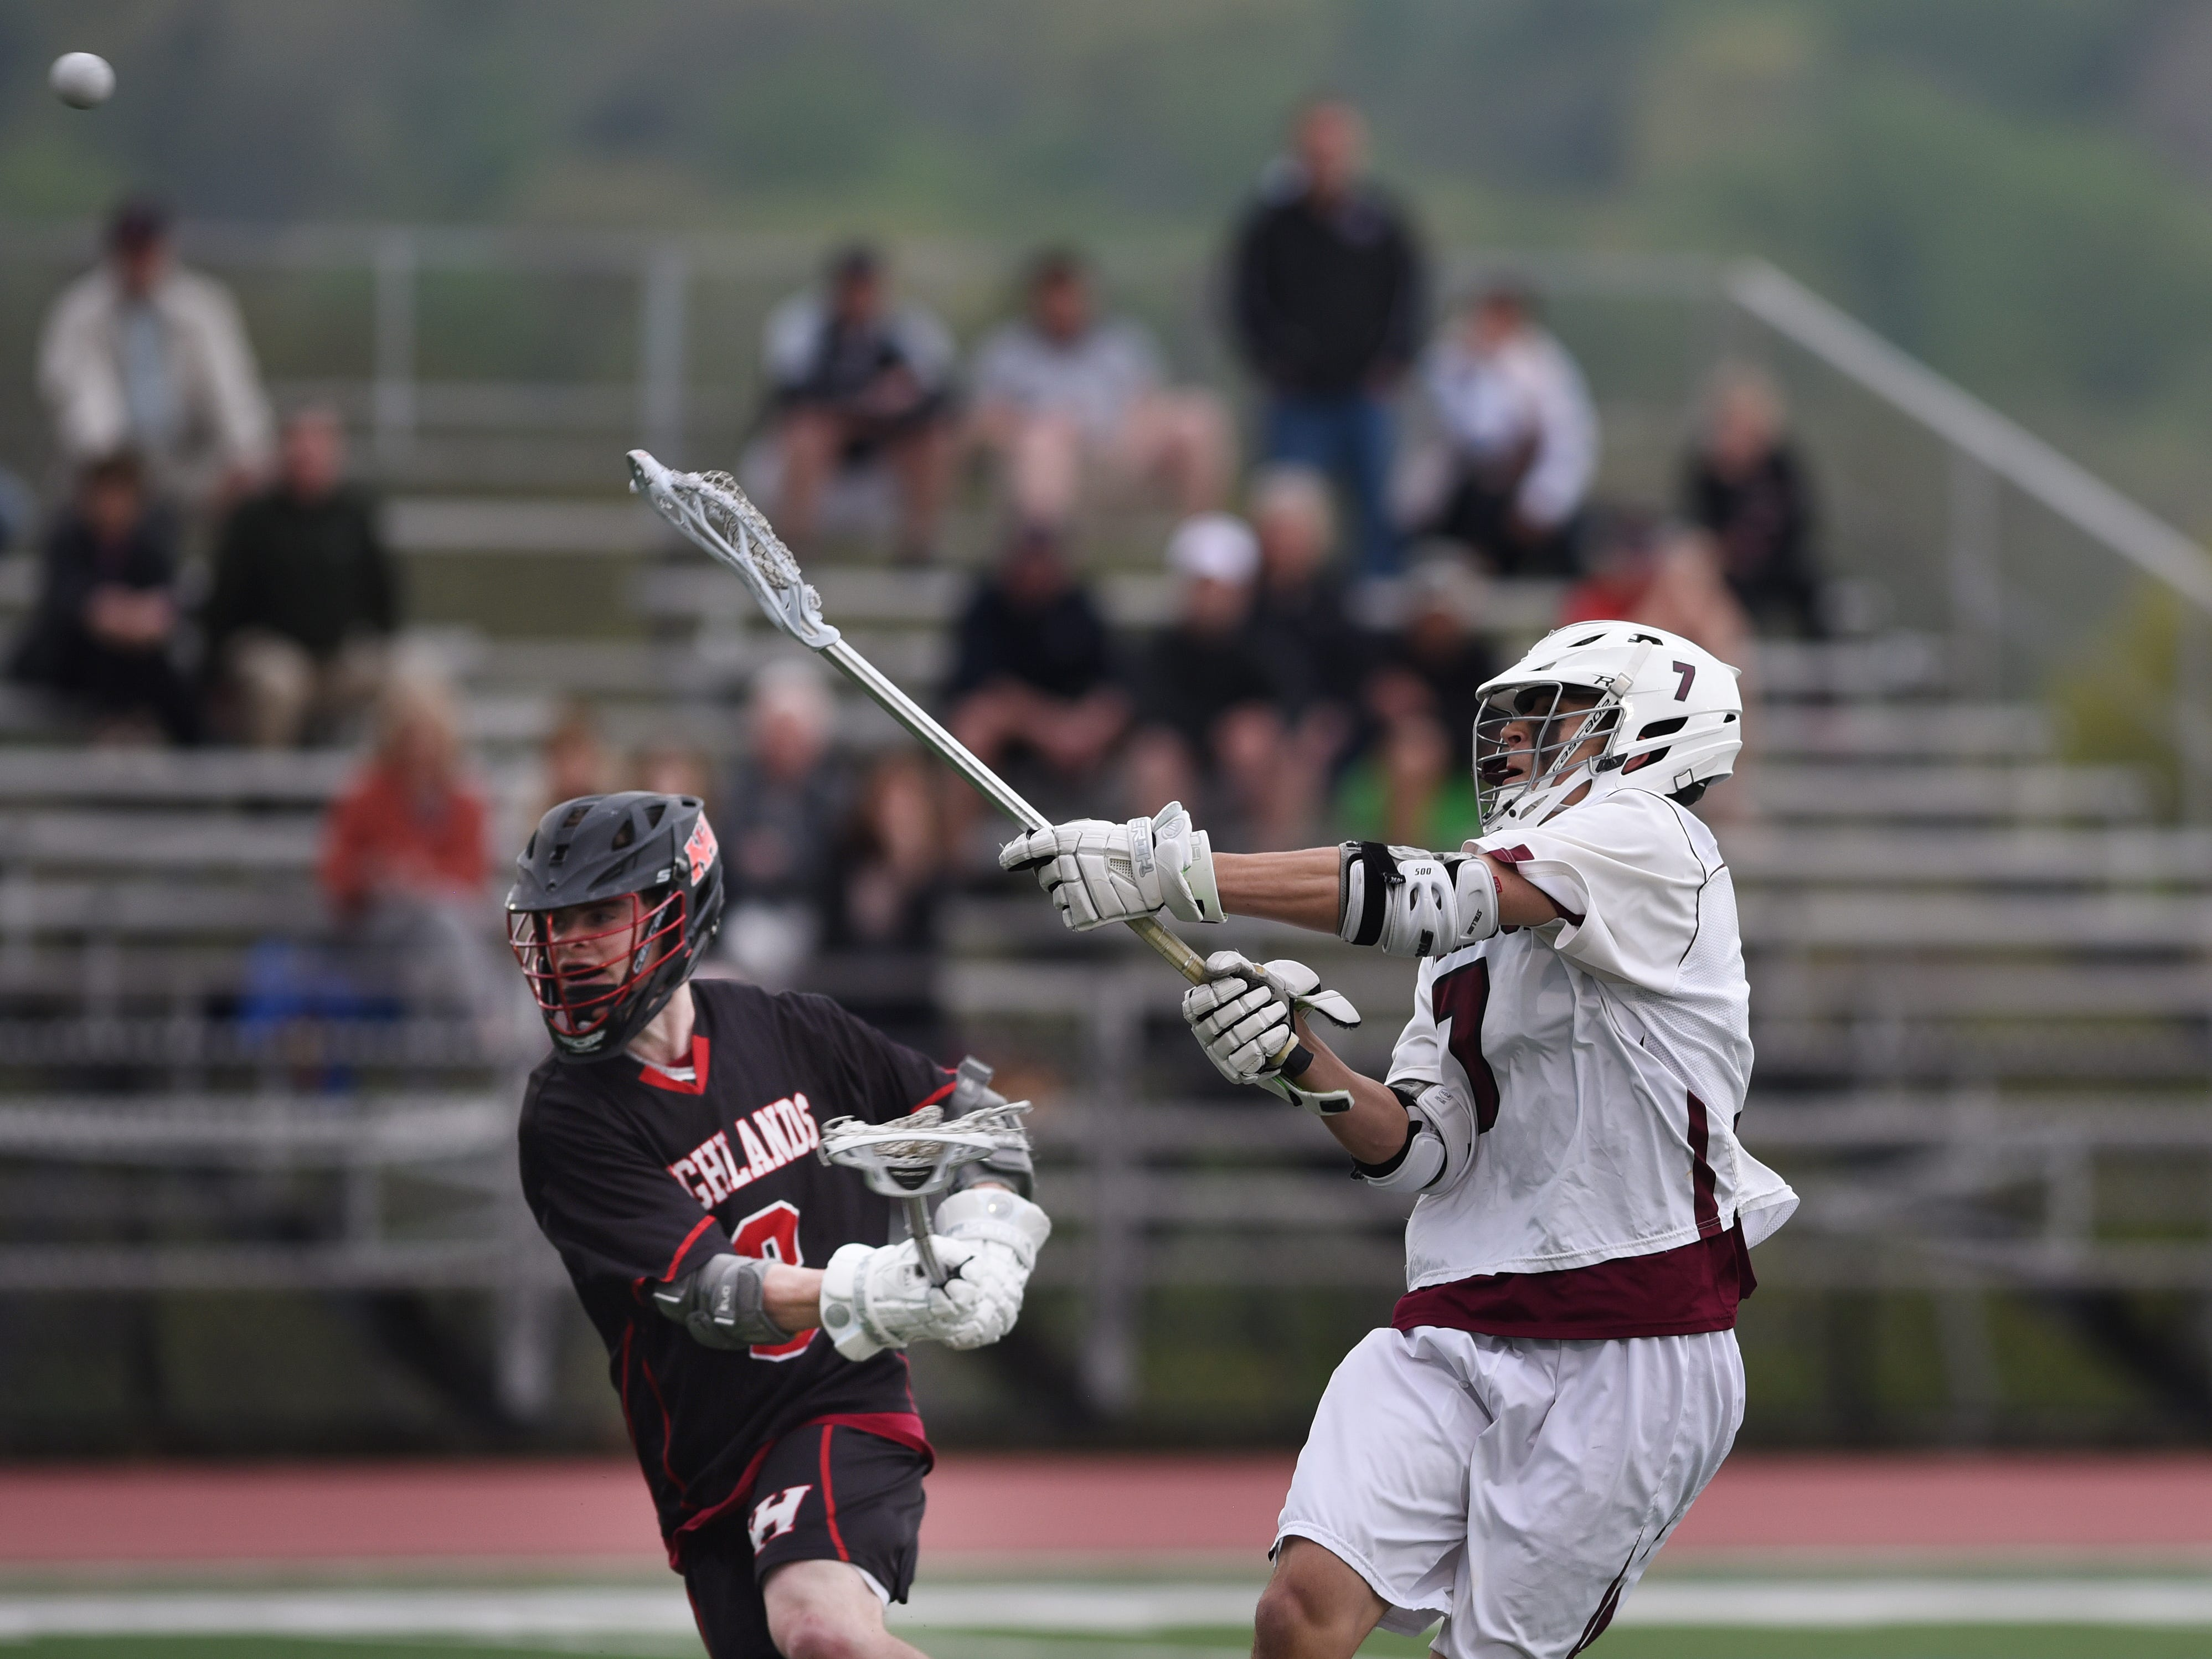 Ridgewood lacrosse plays Northern Highlands at Mahwah on Saturday May 4, 2019. NH#3 Brian Mastriano and R#7 Liam Curley.